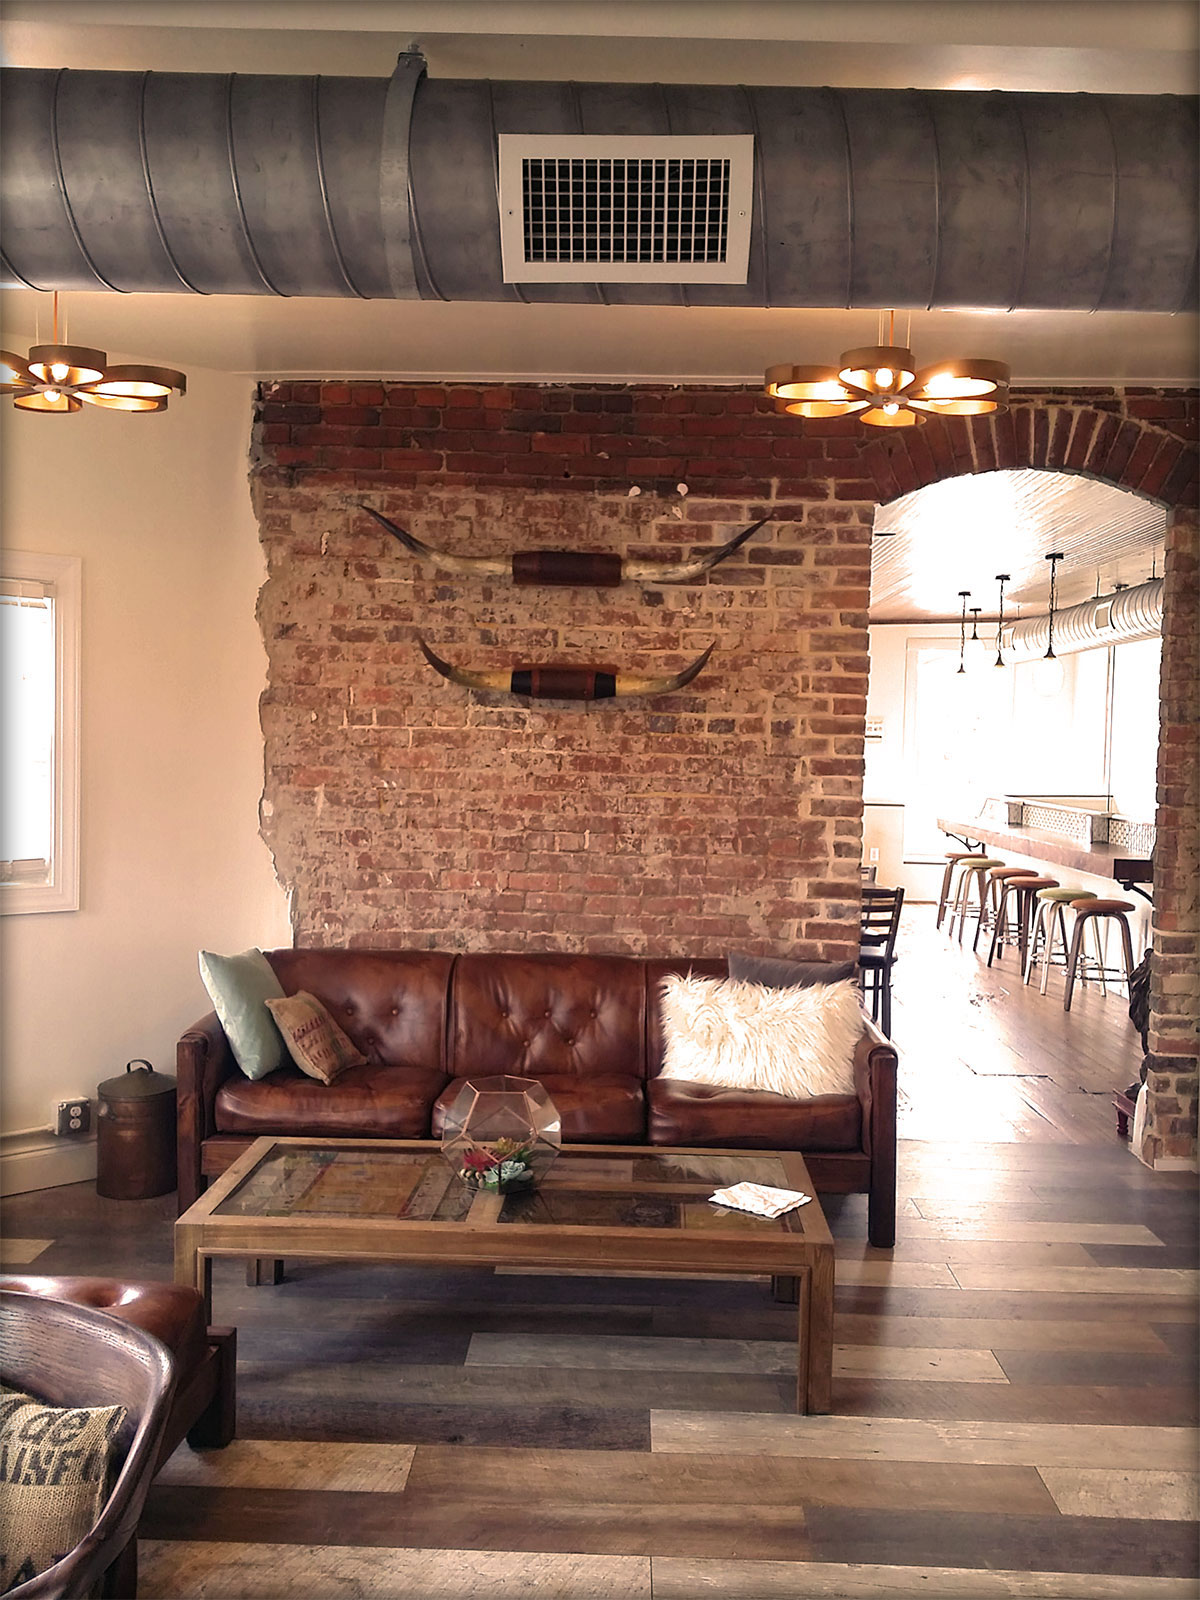 In Nc Full Bloom Coffee Roasters Blossoms With First Cafe